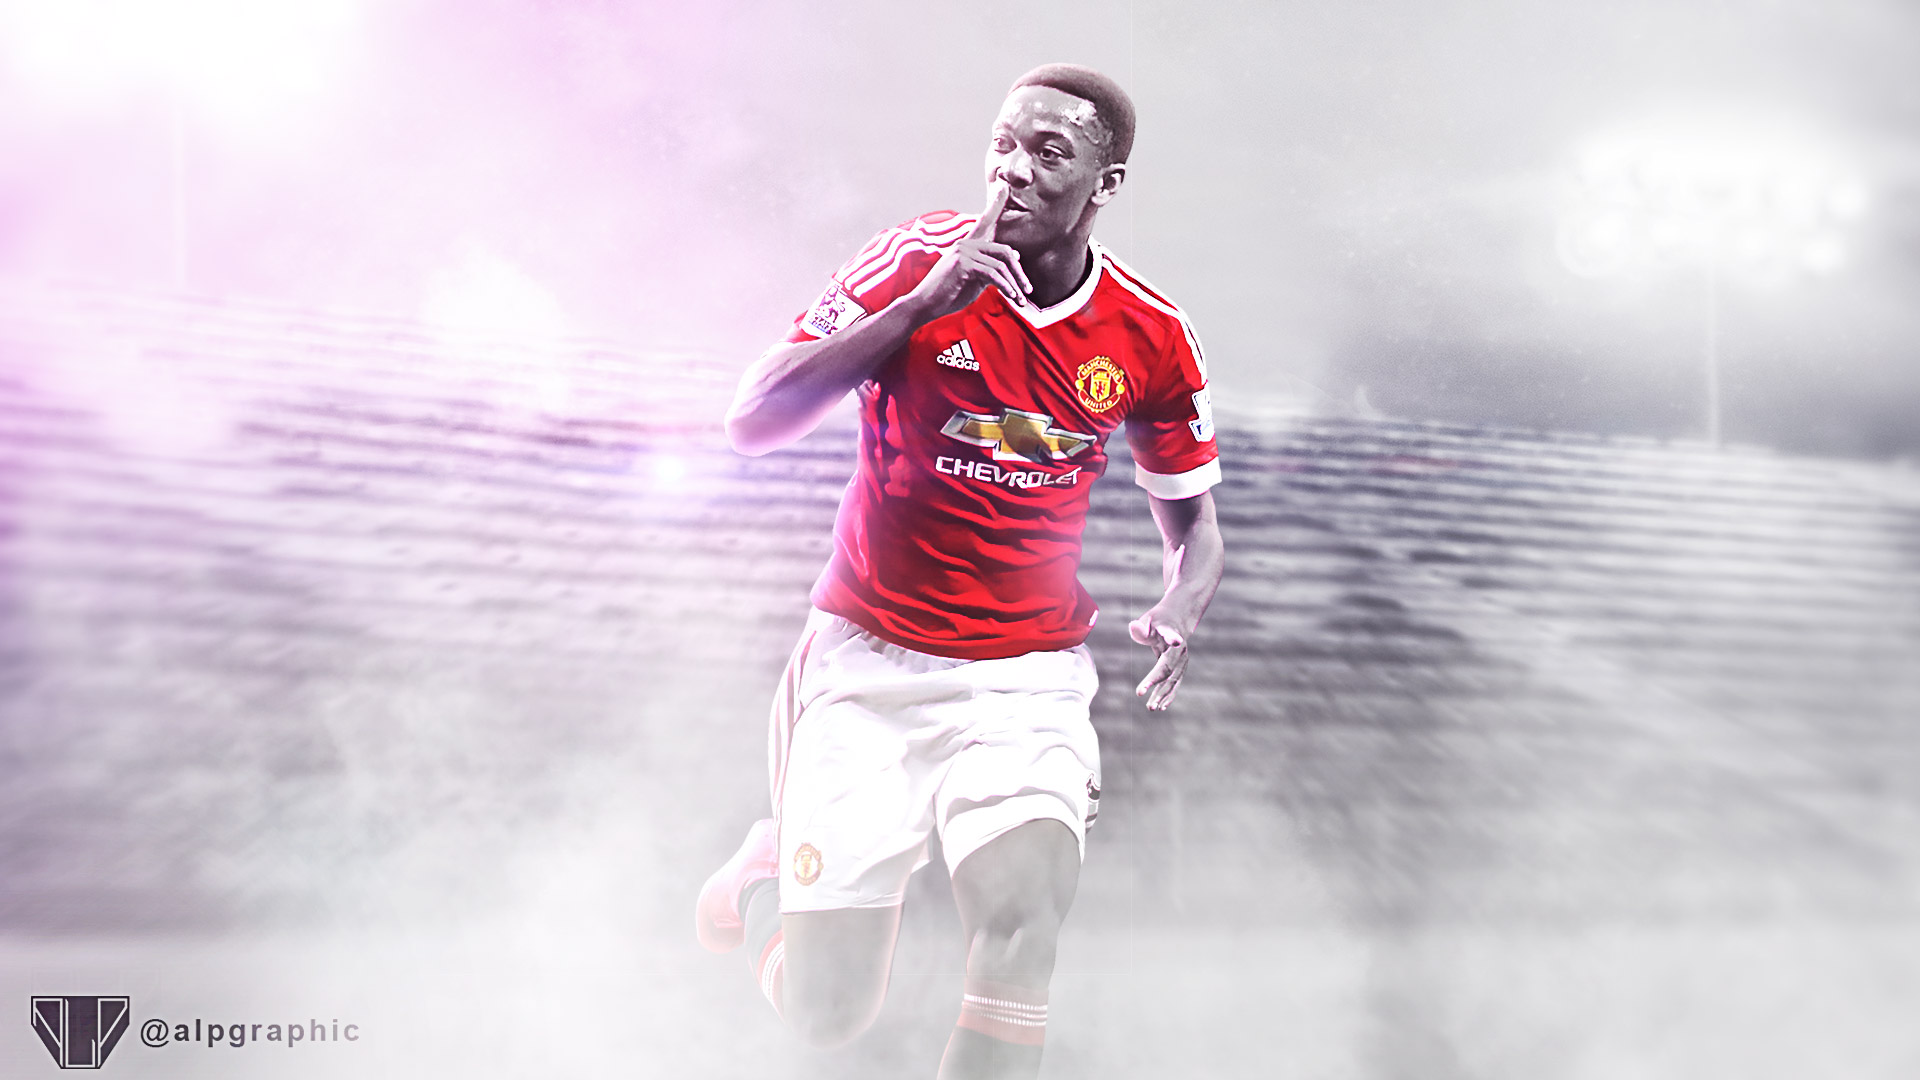 1920X1080 Wallpaper Manchester United 2016